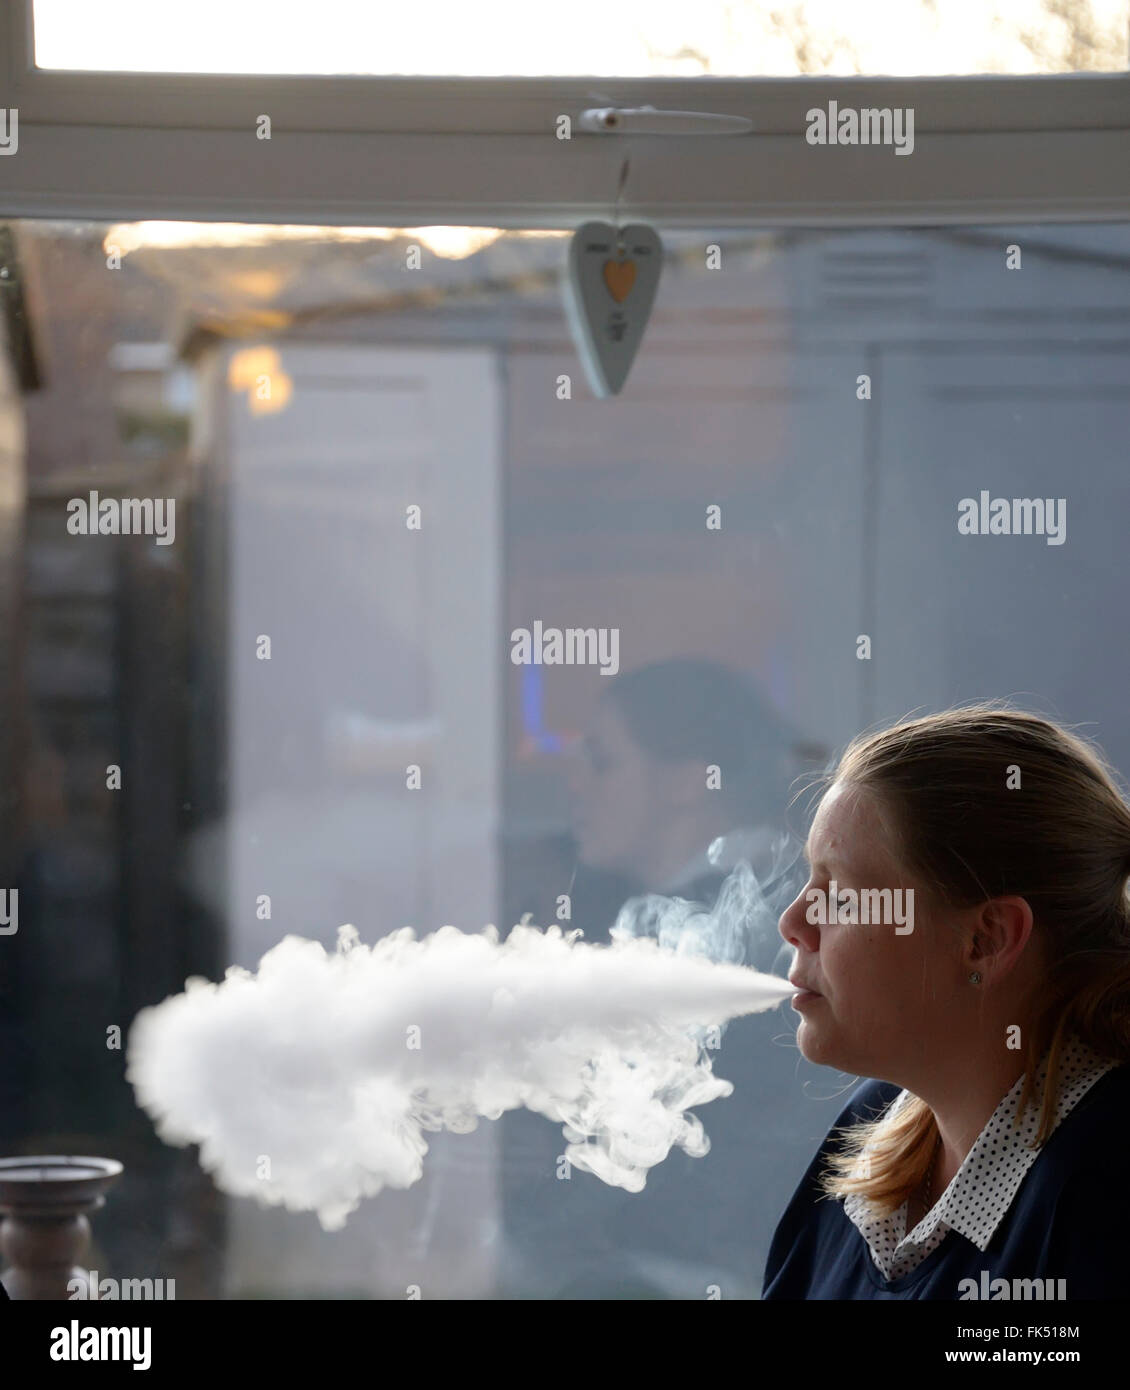 Young woman vaping in a conservatory and reflections in glass. - Stock Image